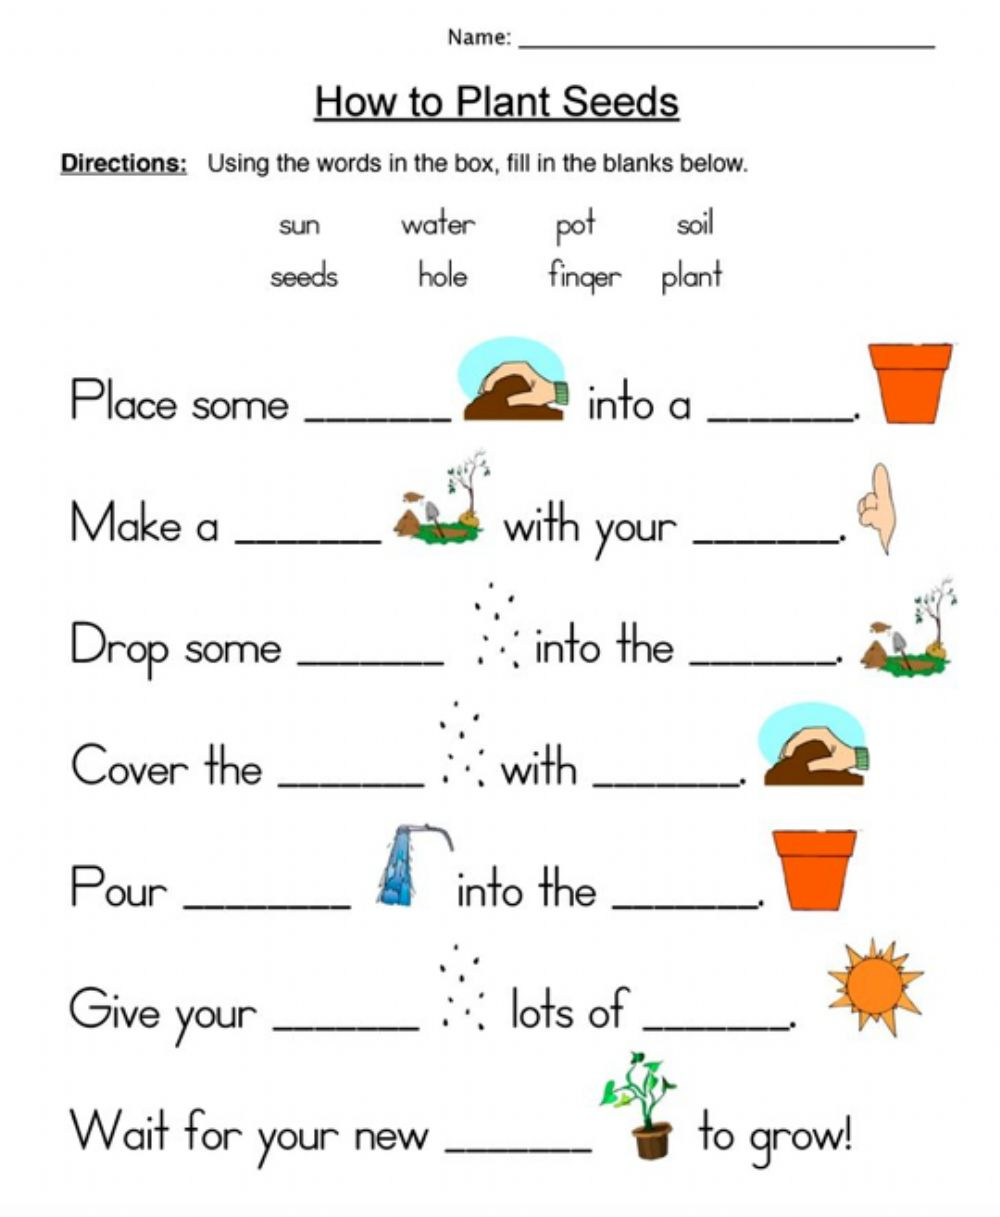 medium resolution of How to Plant Seeds worksheet